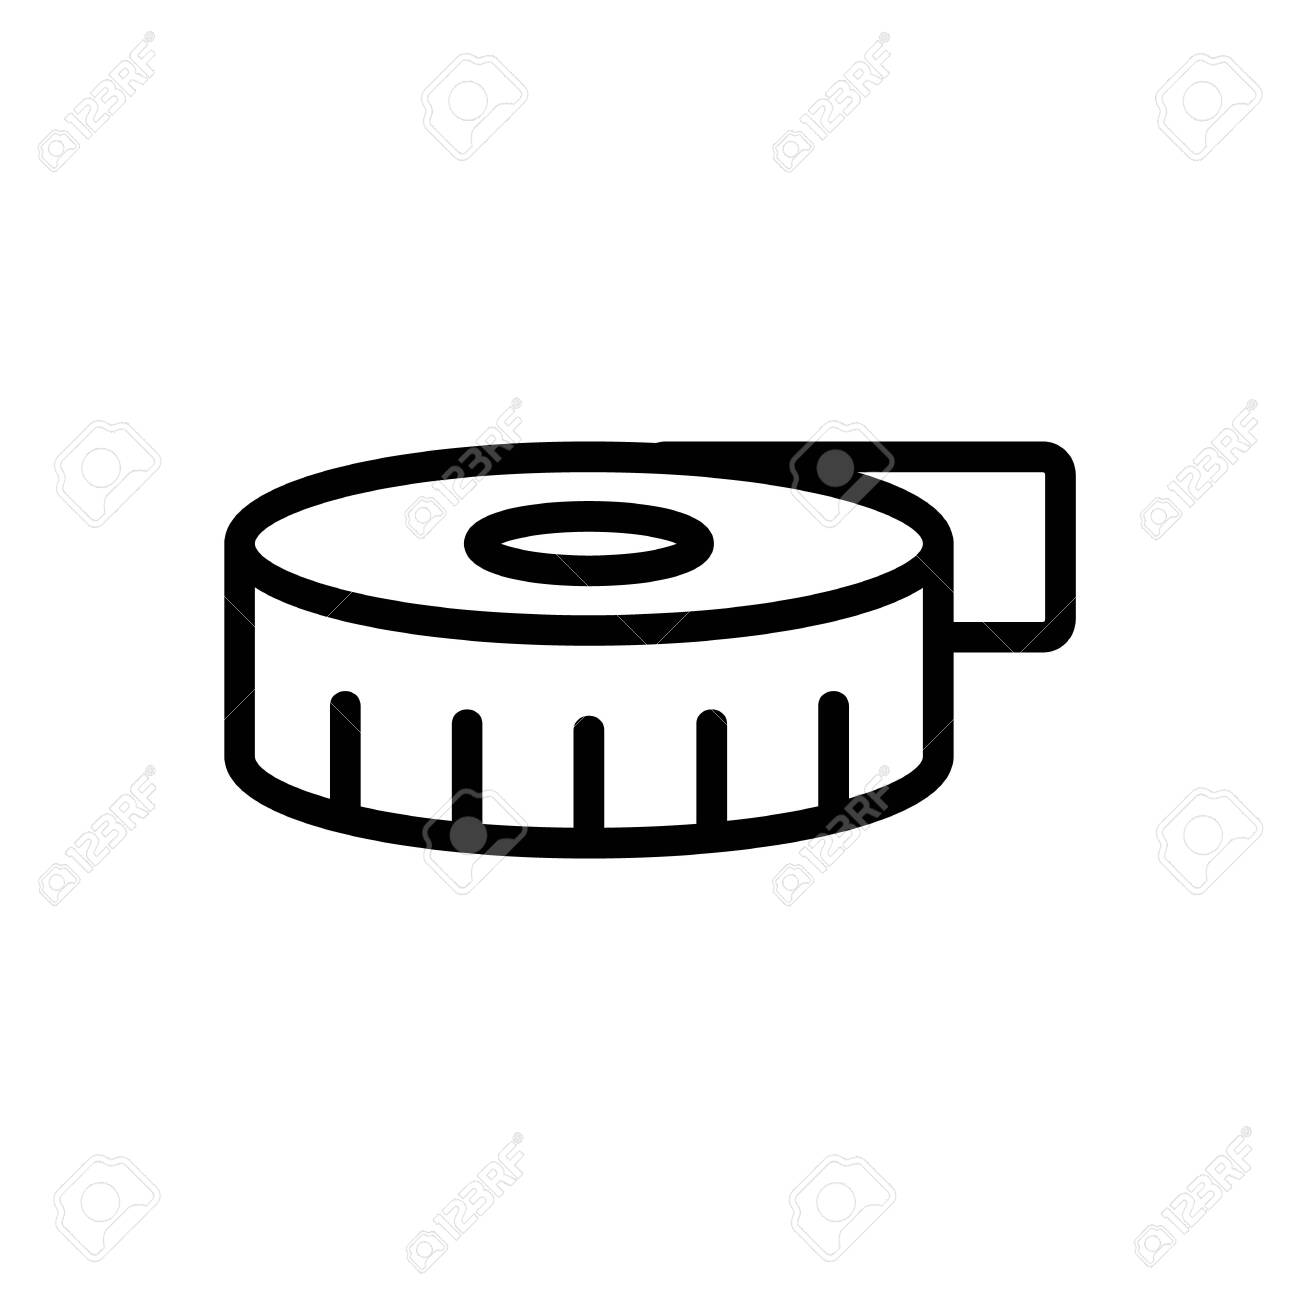 Tape measuring icon vector. Thin line sign. Isolated contour symbol illustration - 141639476